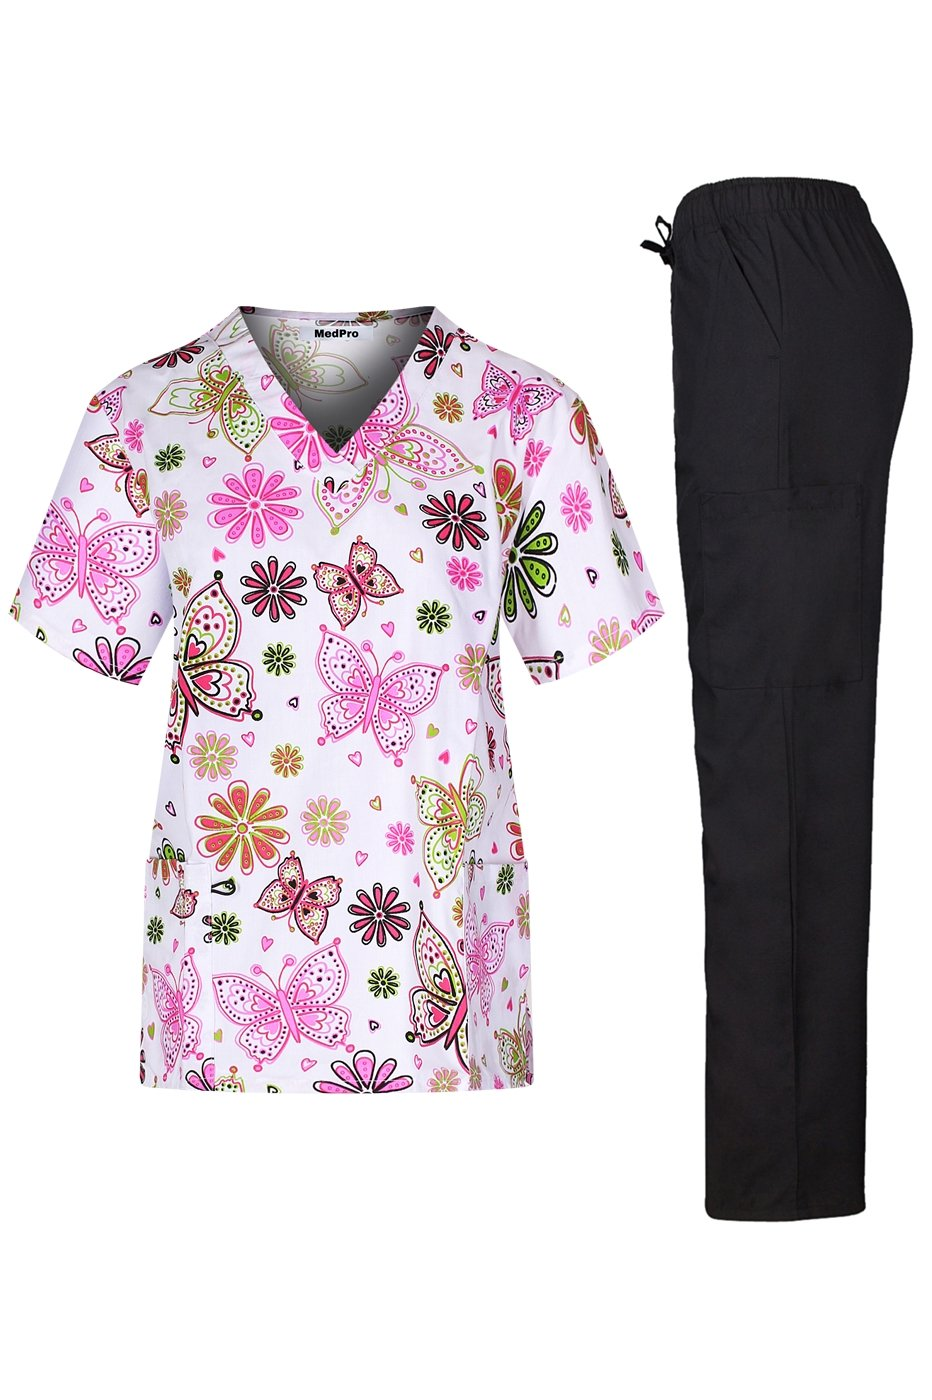 MedPro Women's Medical Scrub Set with V Neck Top and Cargo Pants Light Pink Black S